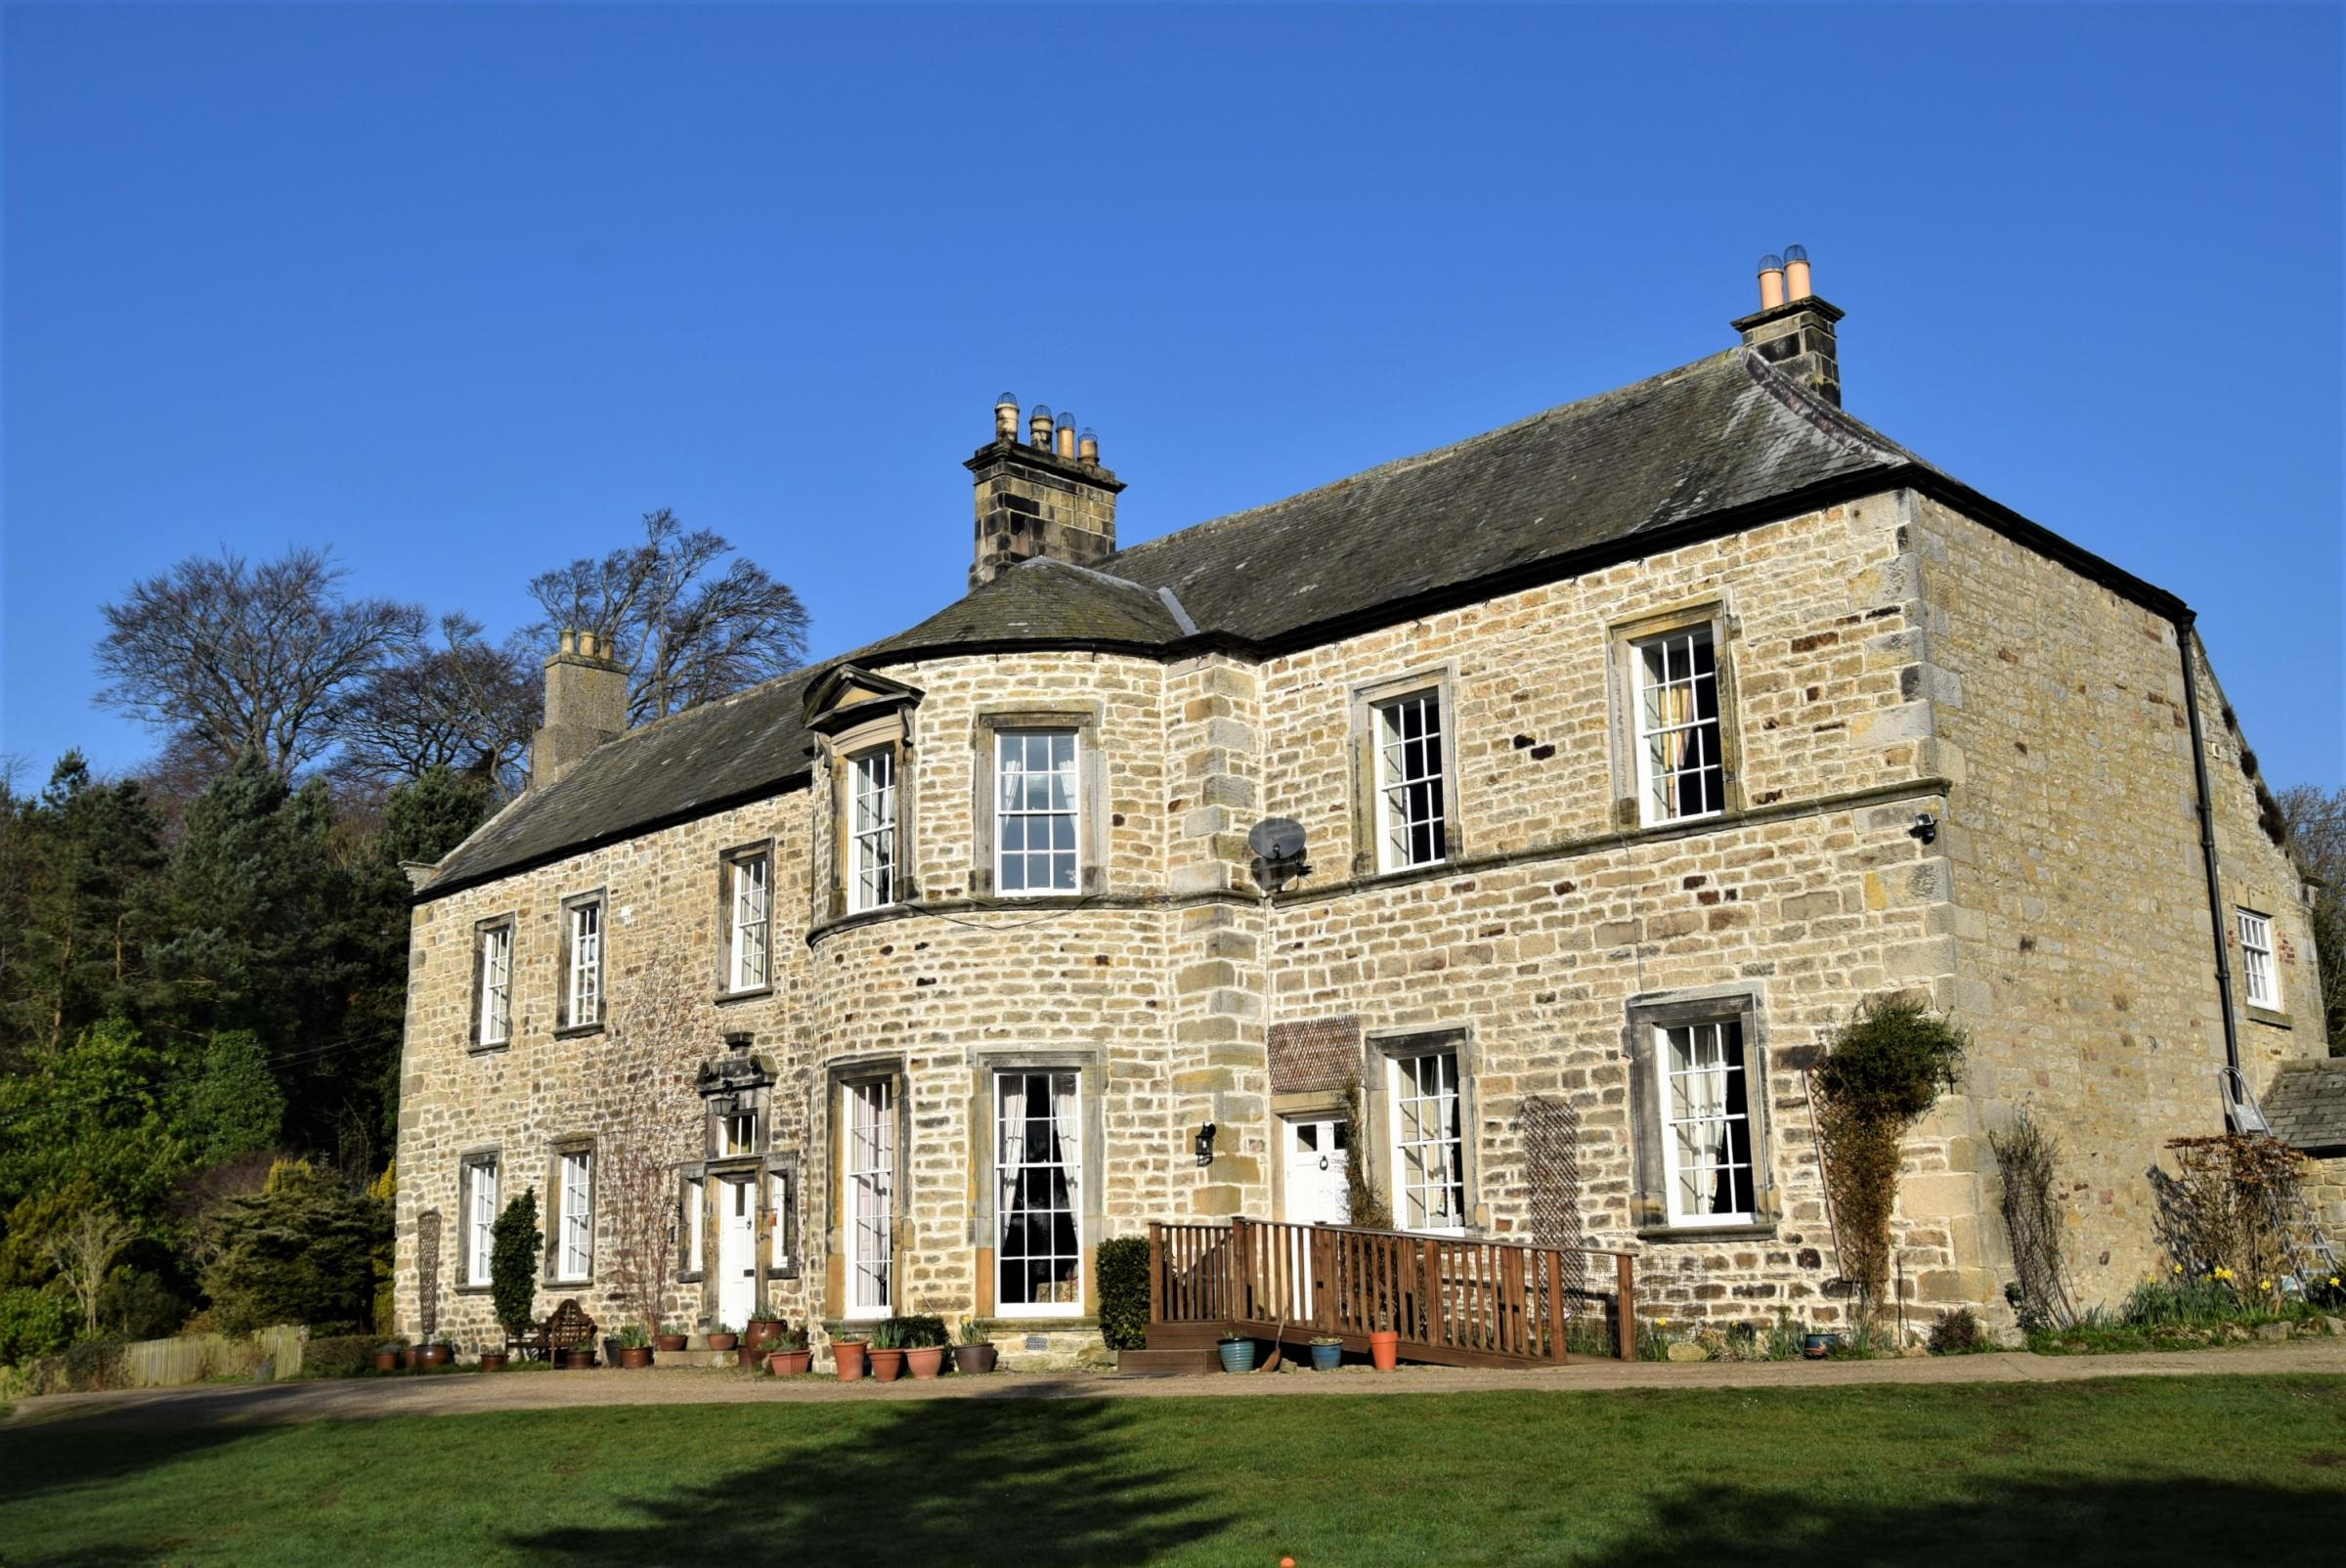 Sandhoe High House near Hexham is a listed property dating from the 1600s